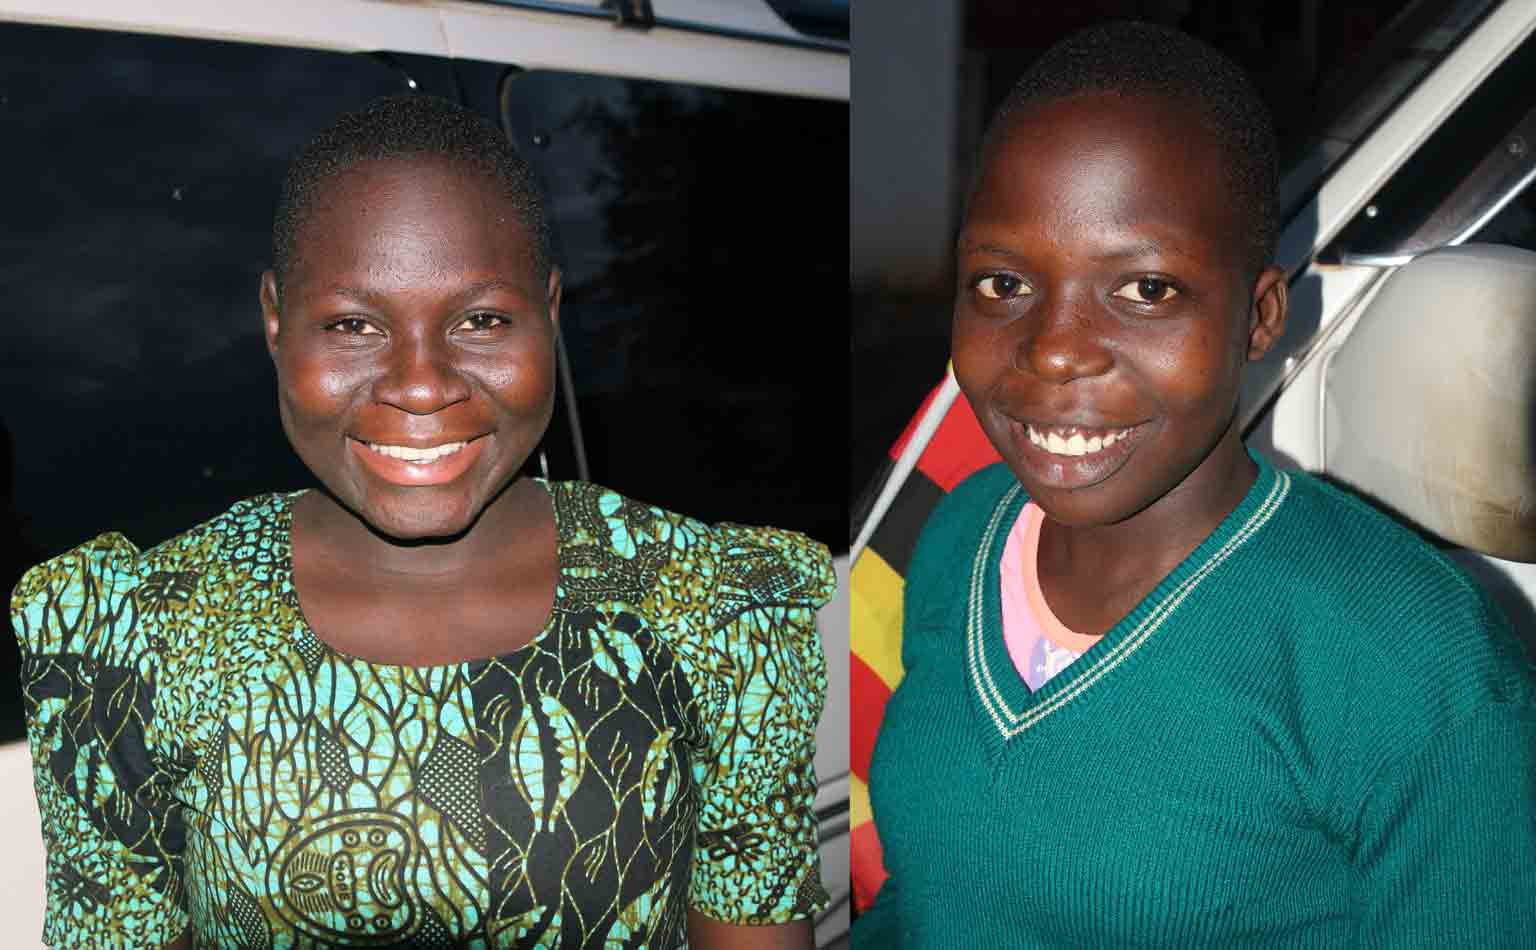 Nasira (left) and Hanifah (right) worry about their mothers, who they left behind.